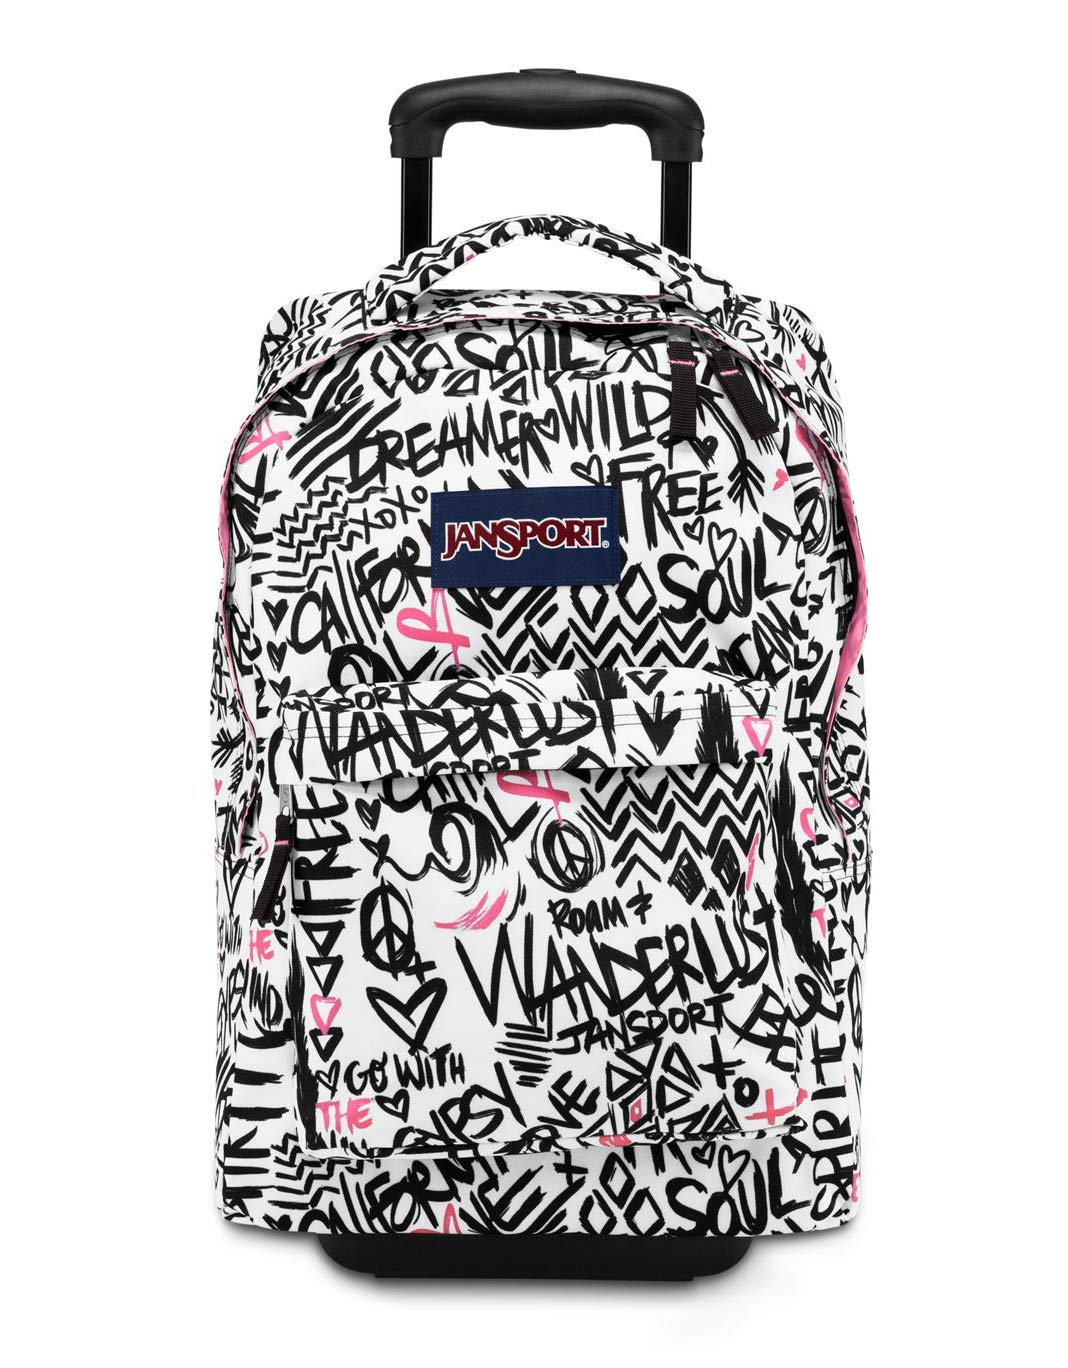 Rolling Backpacks For Teens vBBoyINu